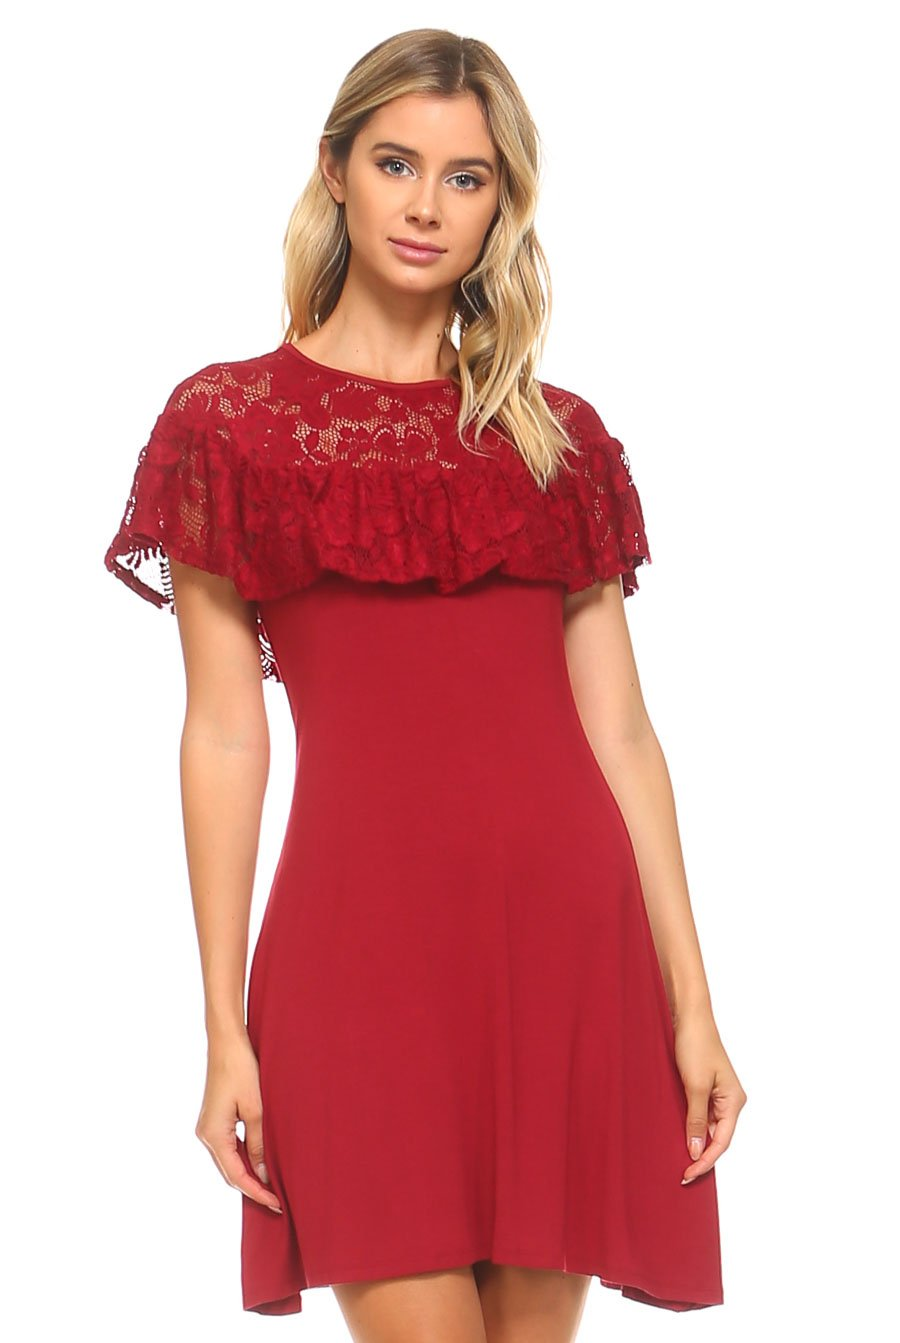 Teeze Me | Short Sleeve Illusion Top Ruffle A-Line Dress  | Berry